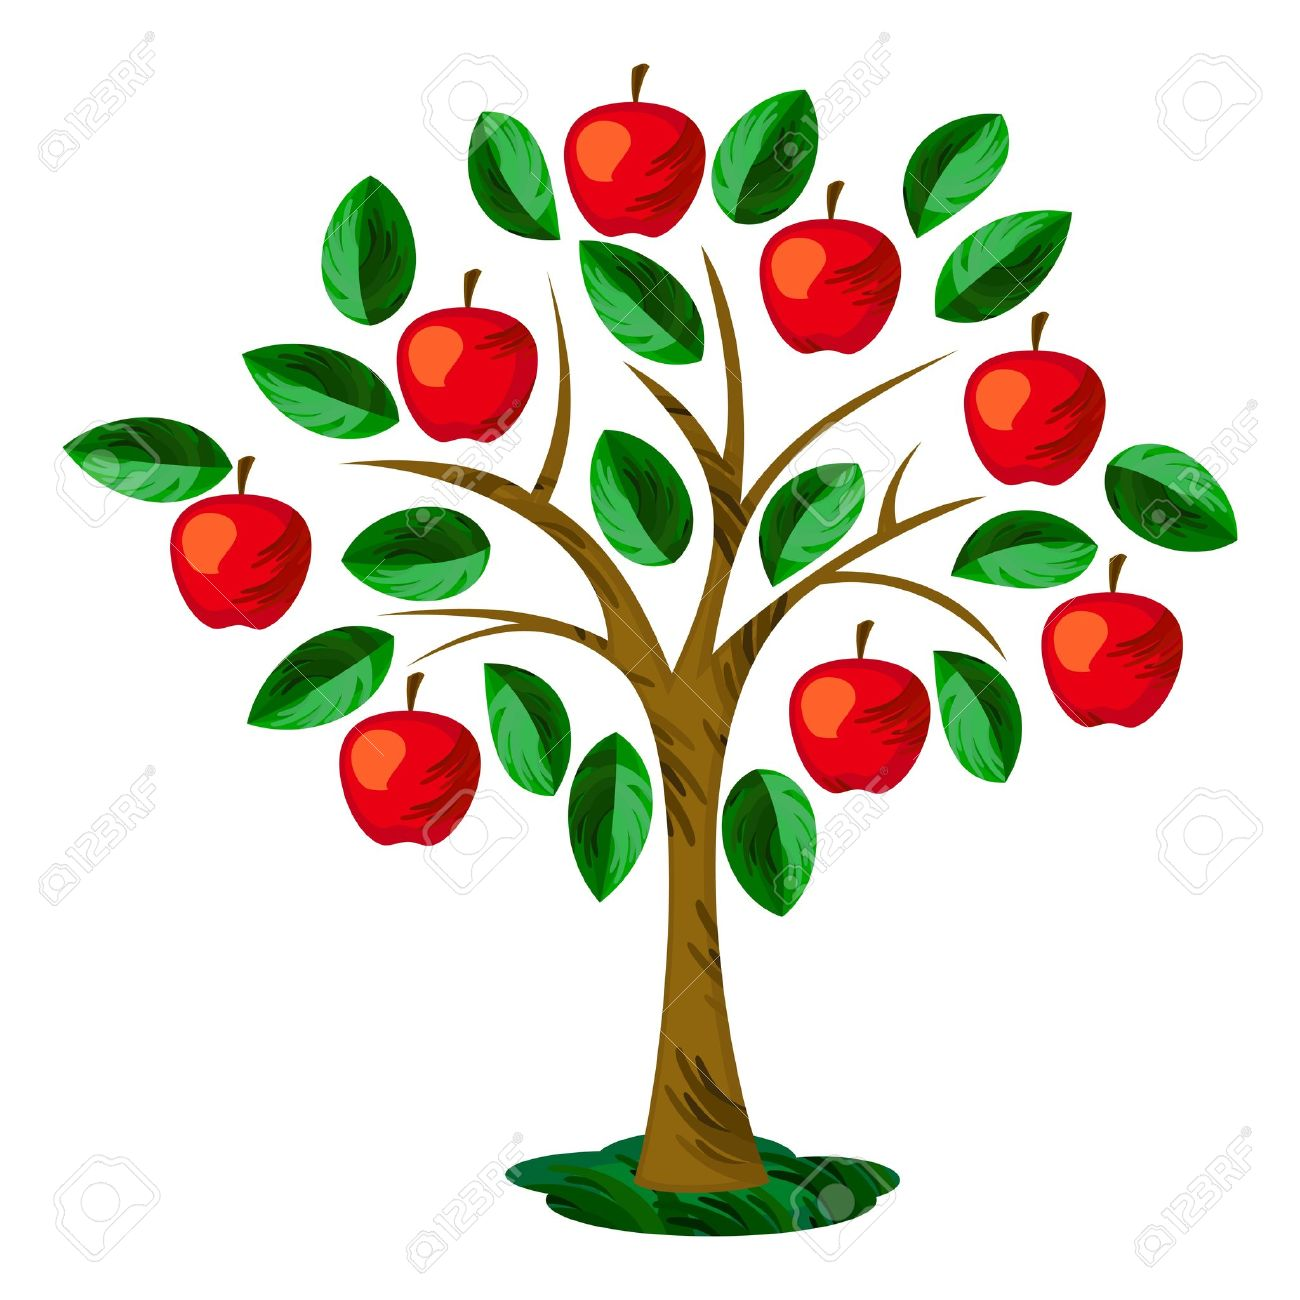 1300x1300 Isolated Apple Tree With Leaves And Fruits Royalty Free Cliparts